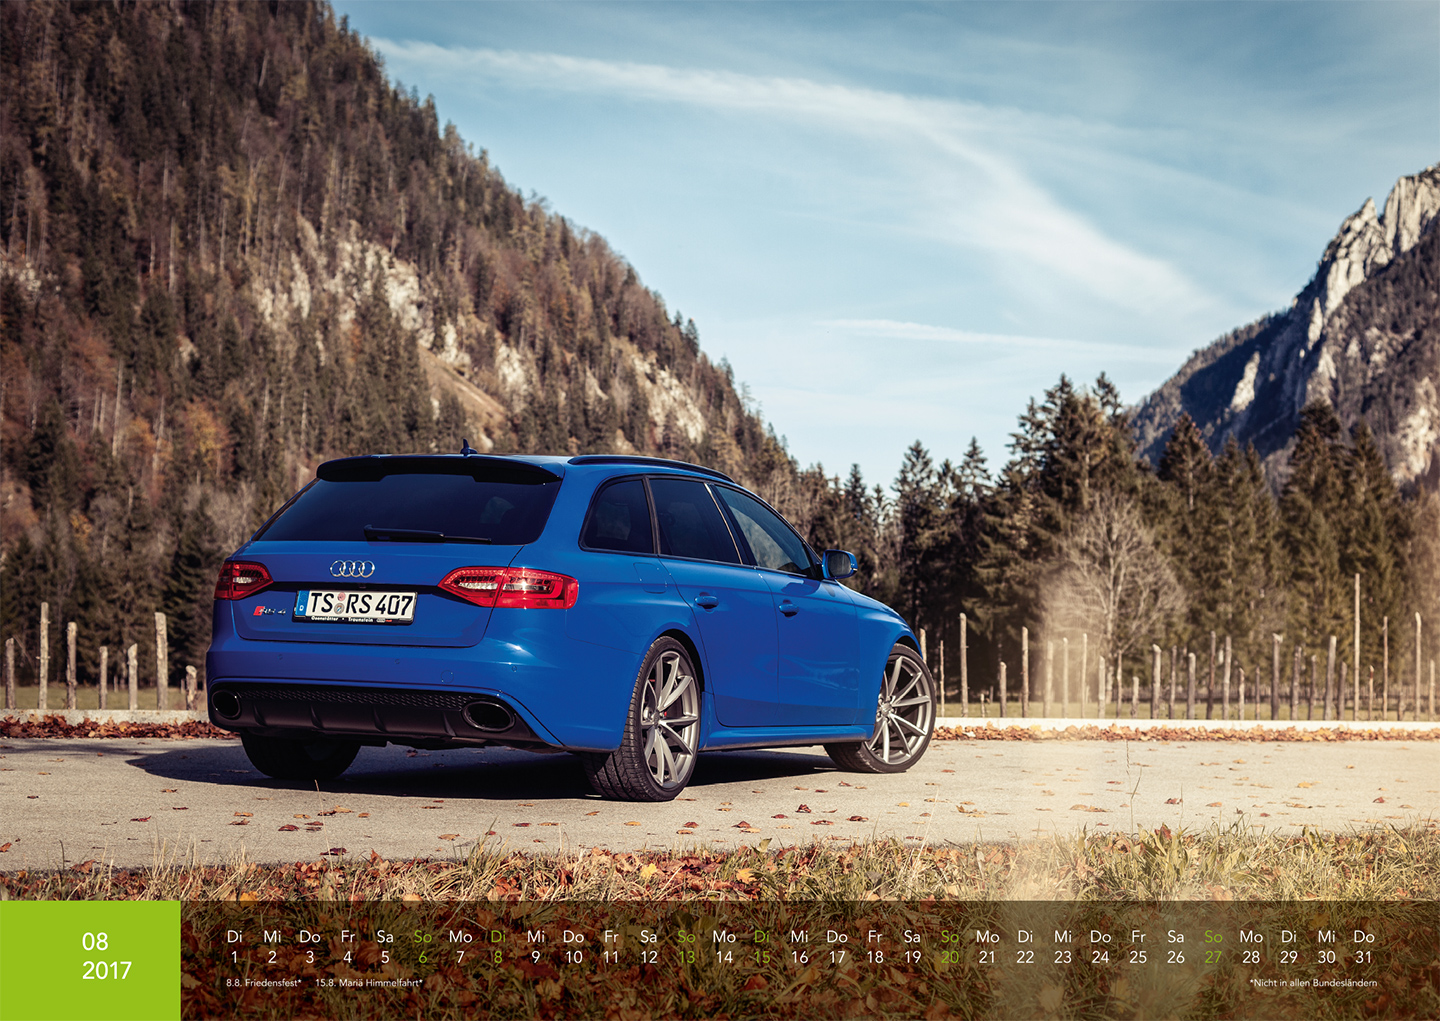 Audi Kalender 2017 - Audi RS4 Nogaro Selection